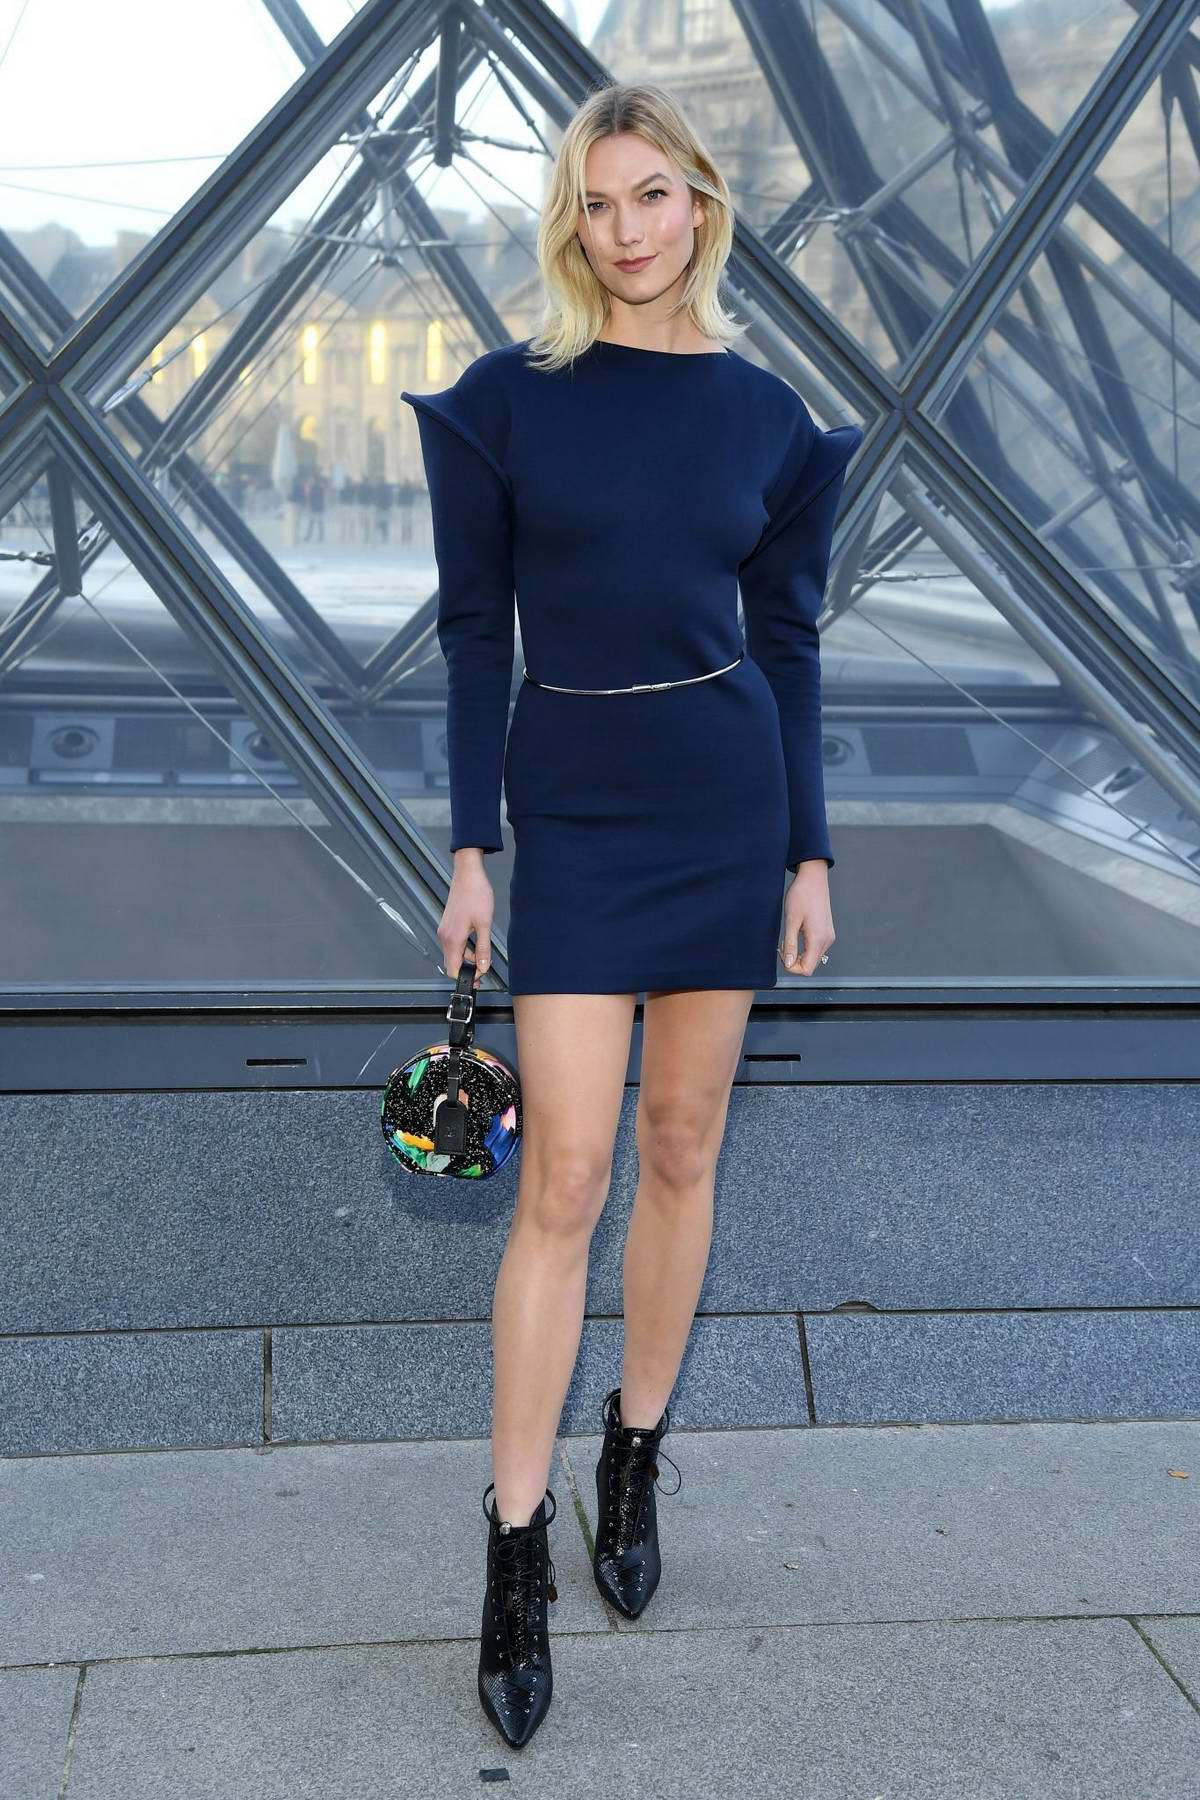 Karlie Kloss attends the Louis Vuitton show during Paris Fashion Week F/W 2019/20 in Paris, France